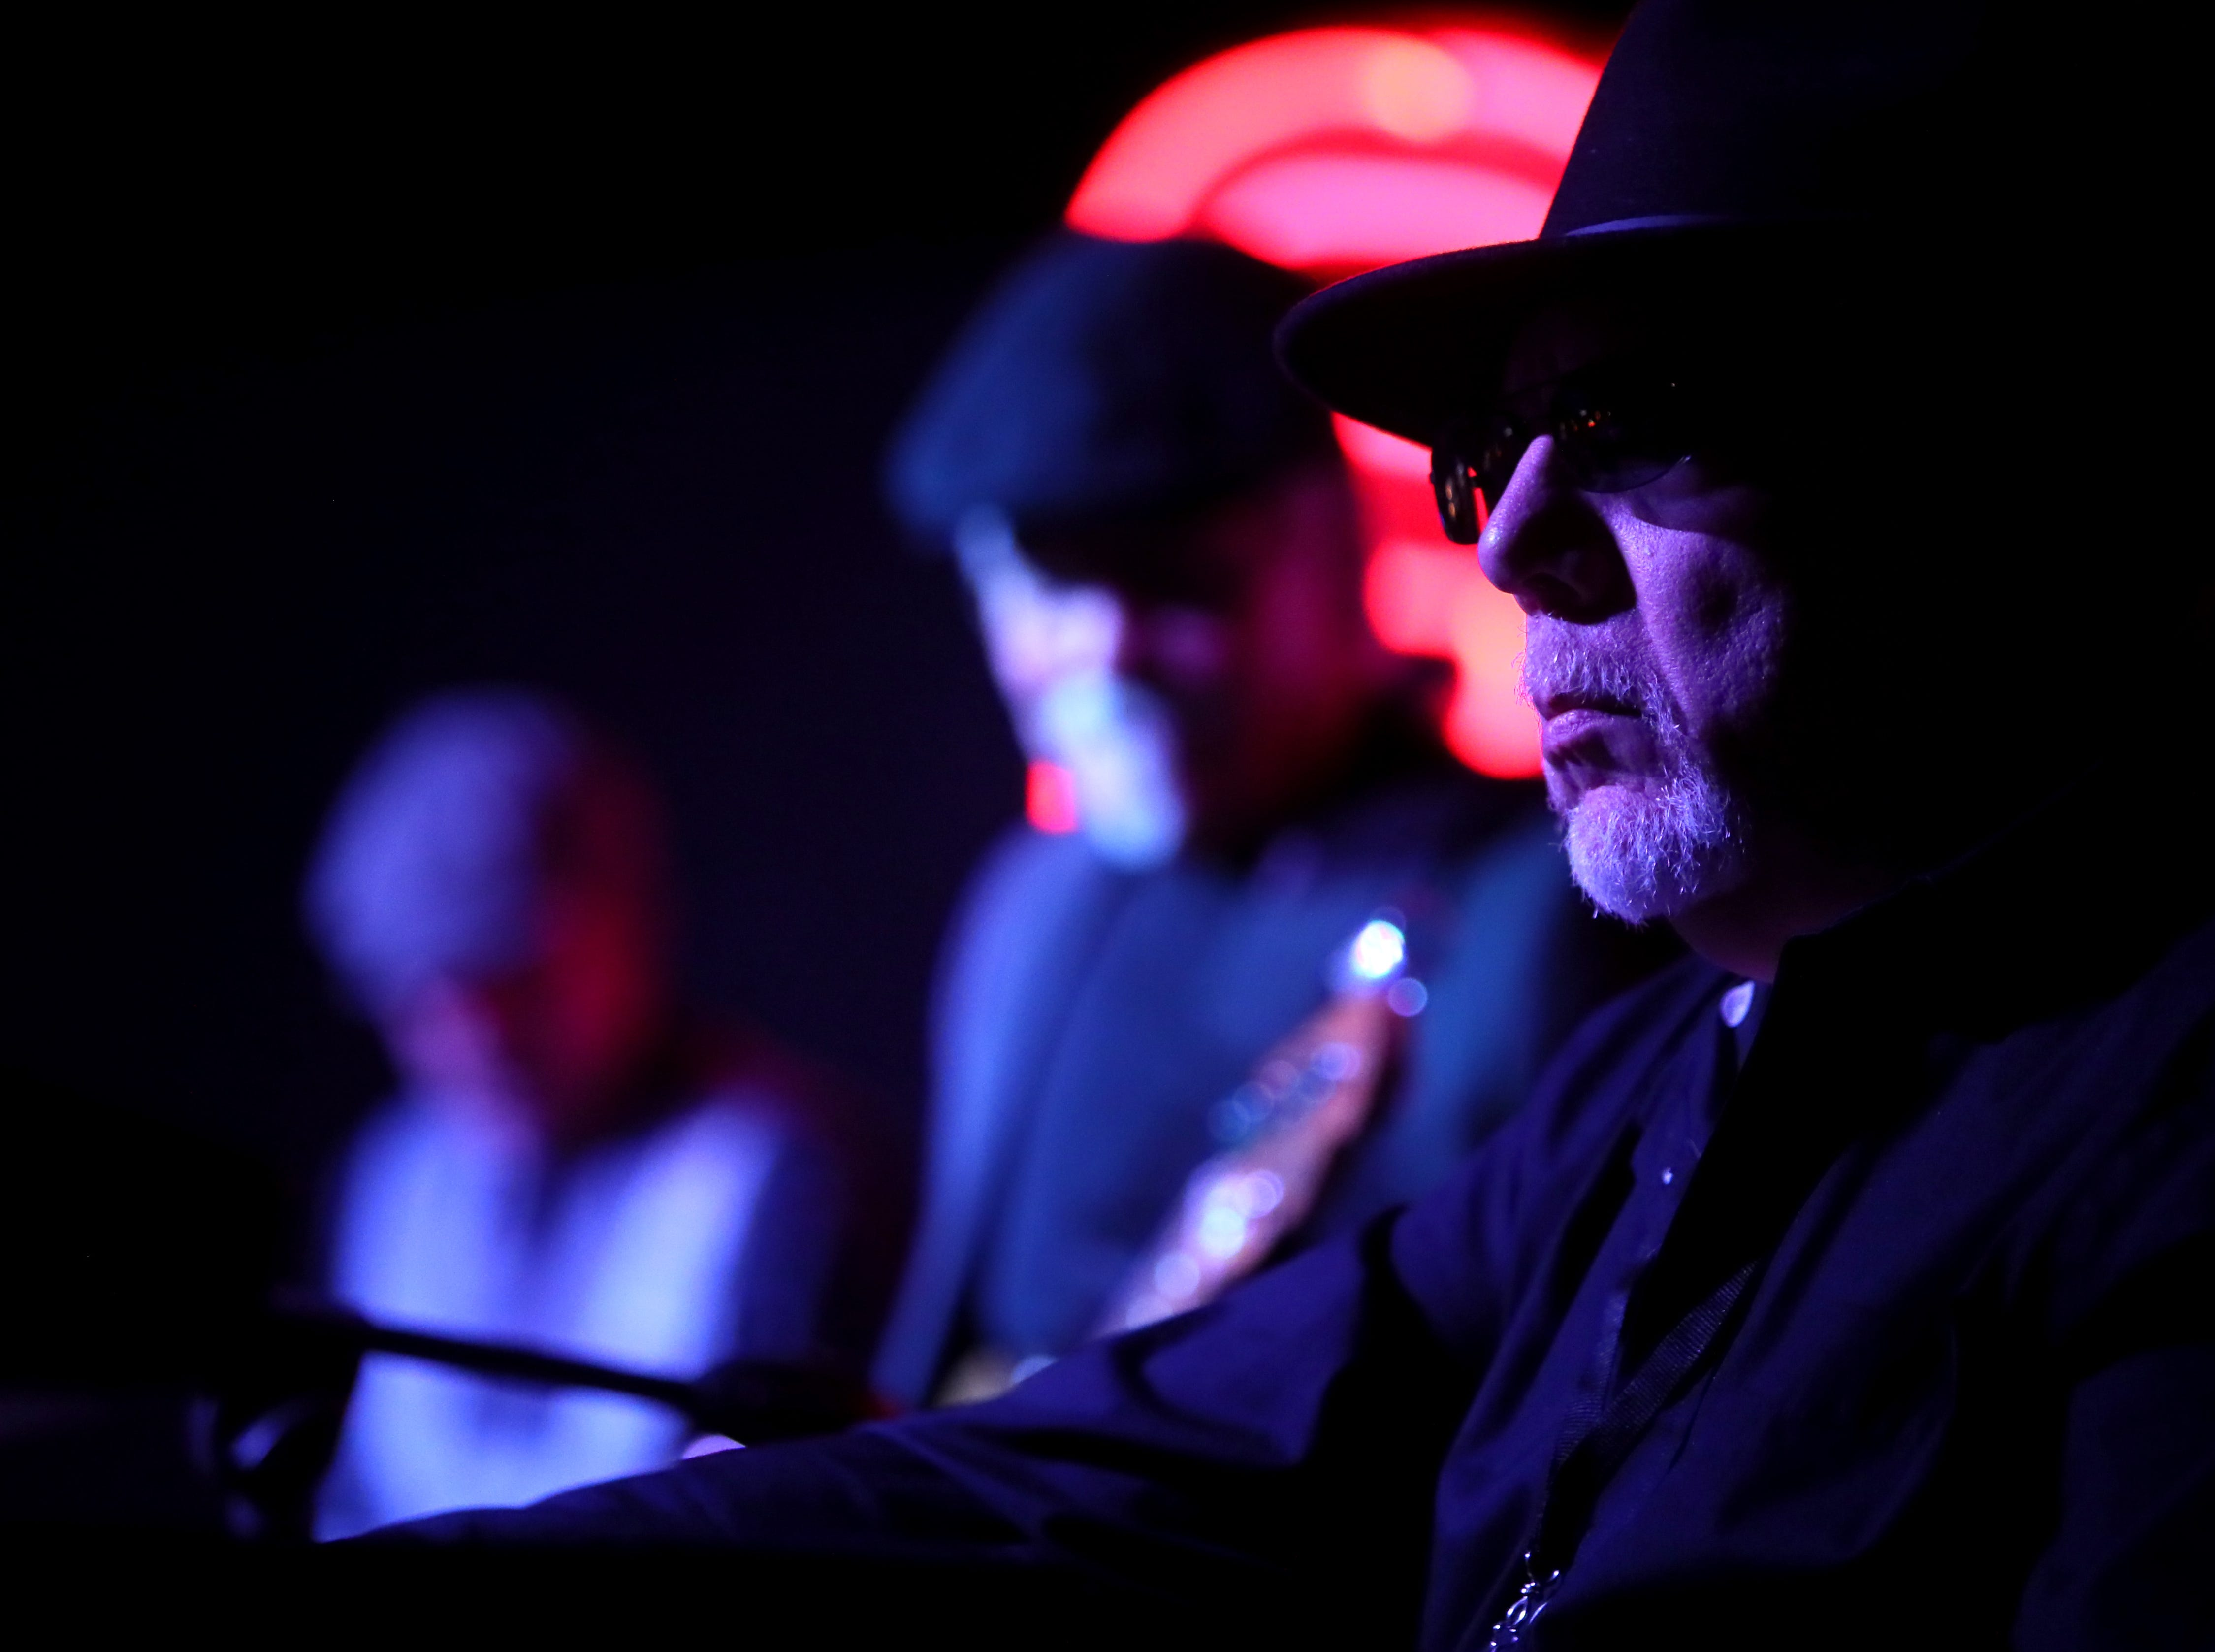 The Doug Hart Band plays at Alfred's during the 35th International Blues Challenge on Beale Street Thursday, Jan. 24, 2019.